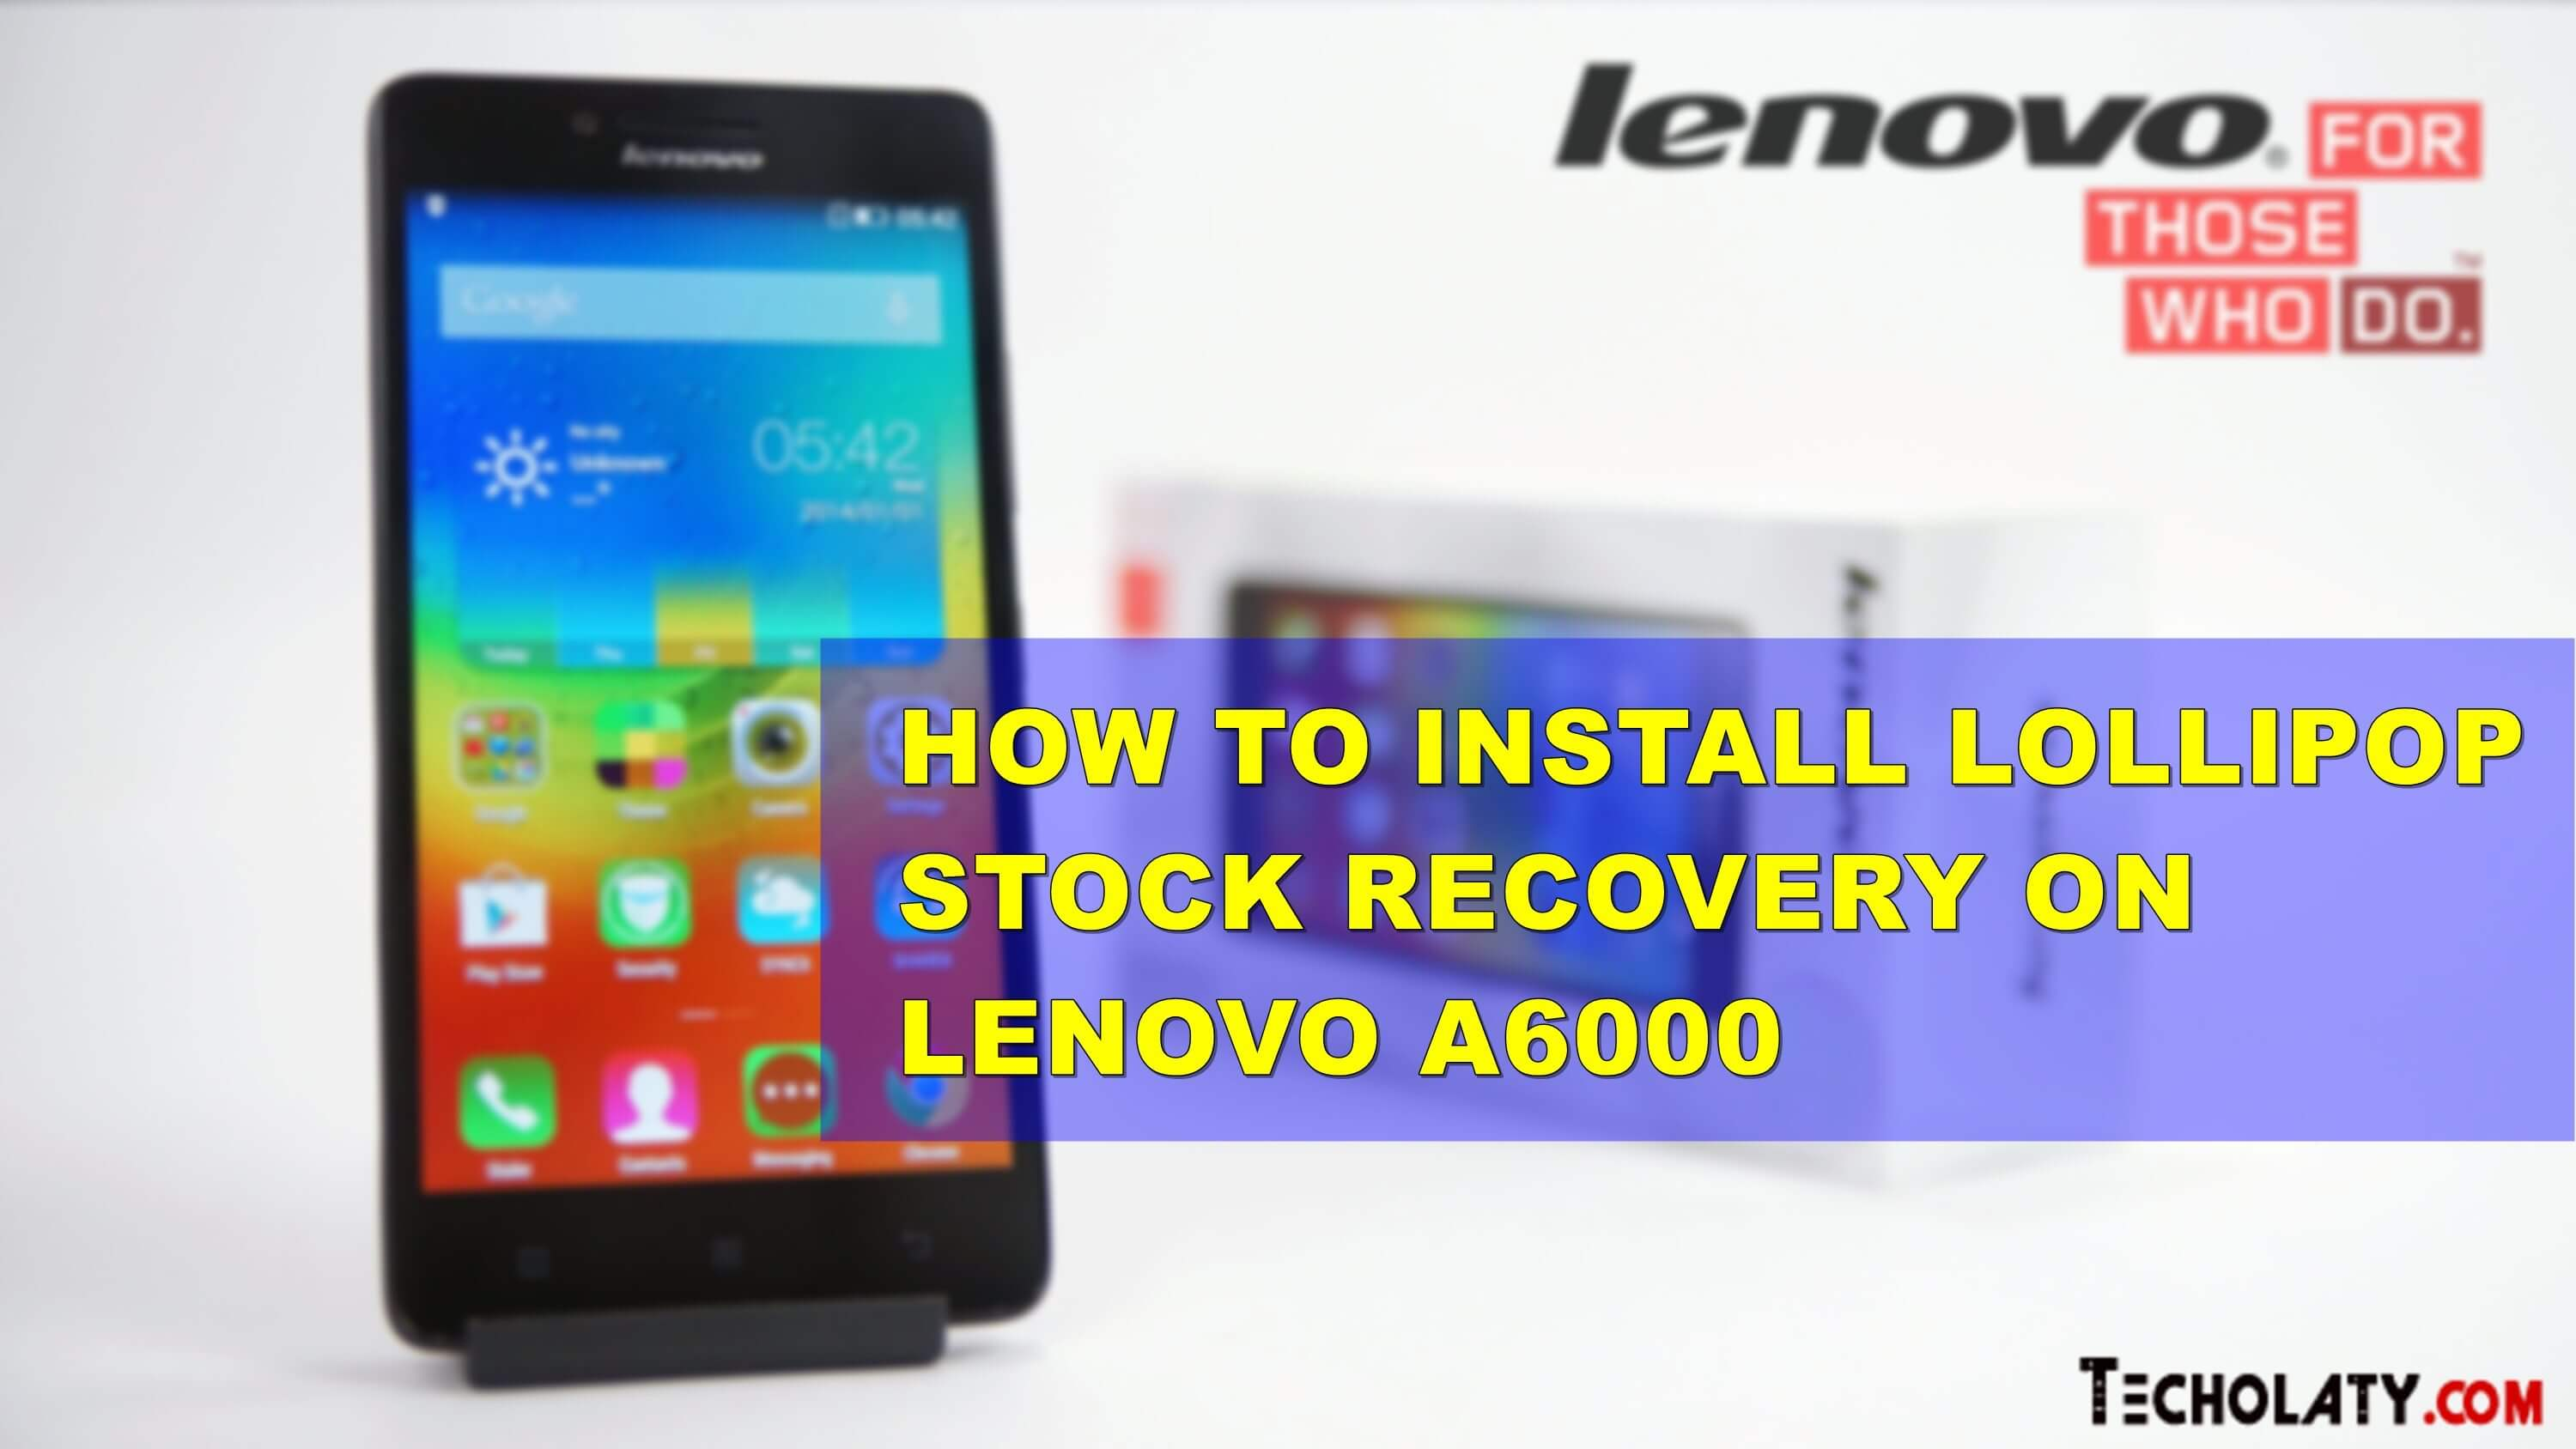 lenovo-a6000-stock-lollipop-recovery